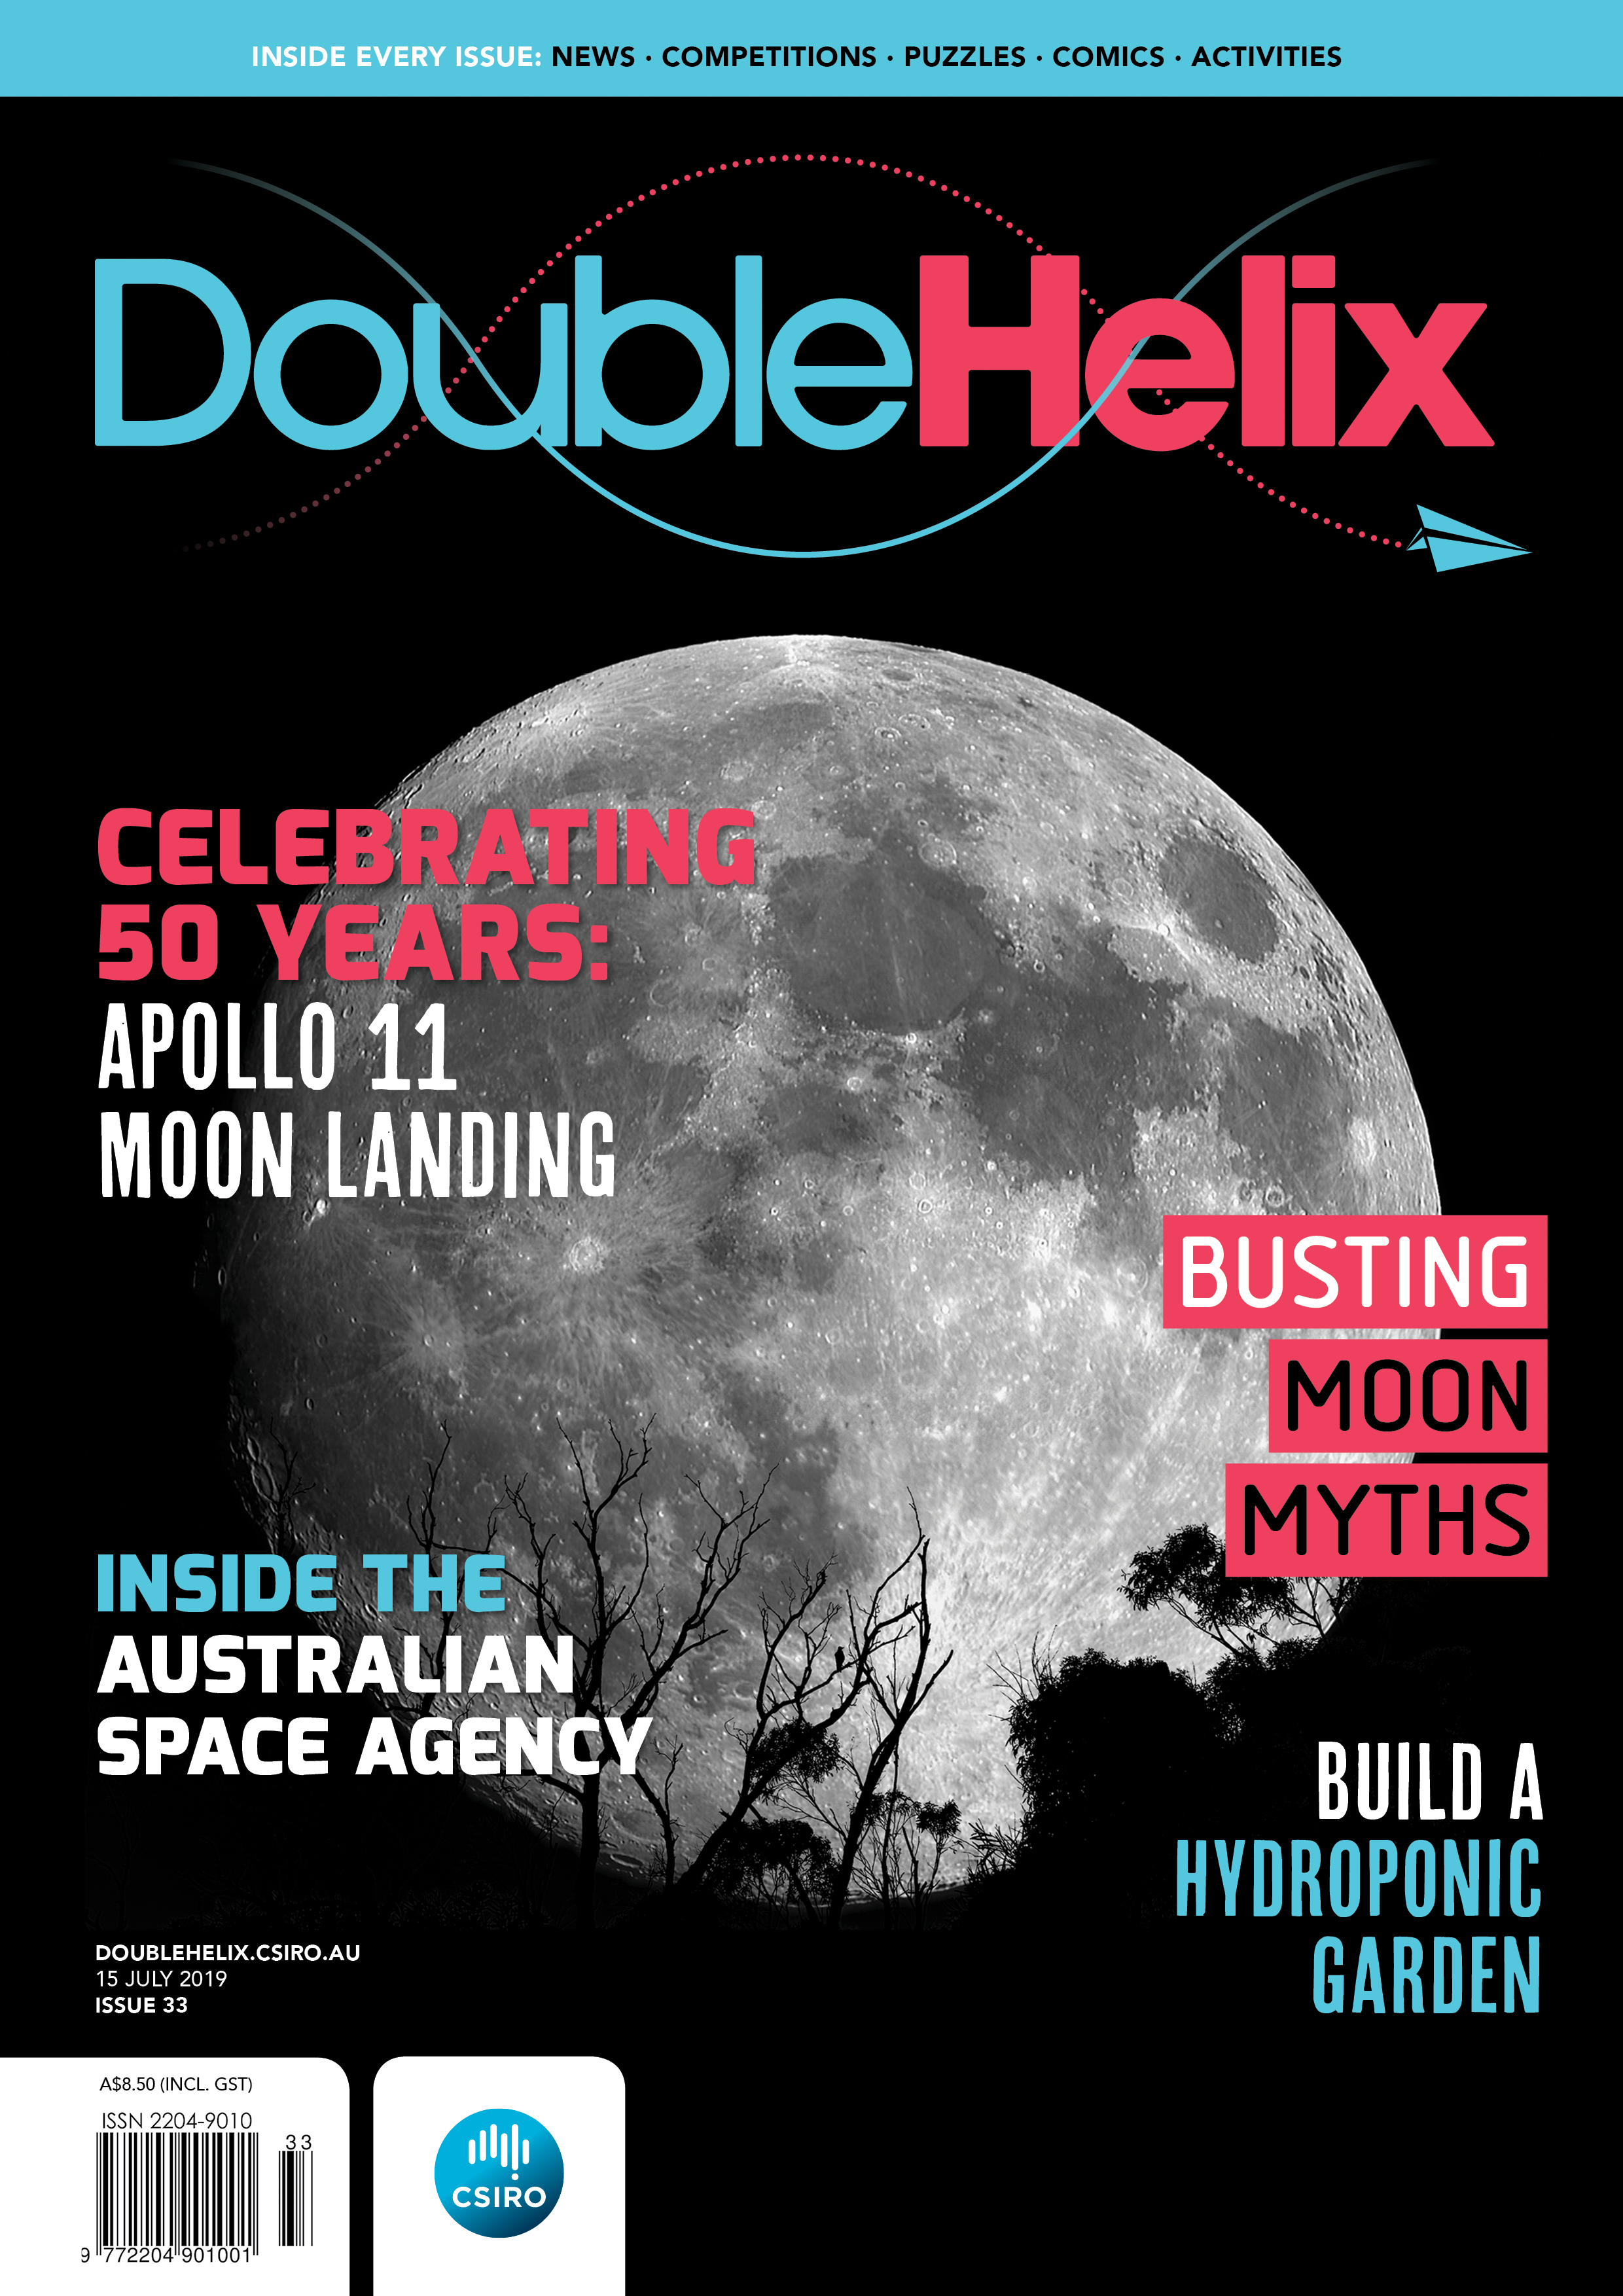 Magazine cover with full moon on black background with pink and blue text